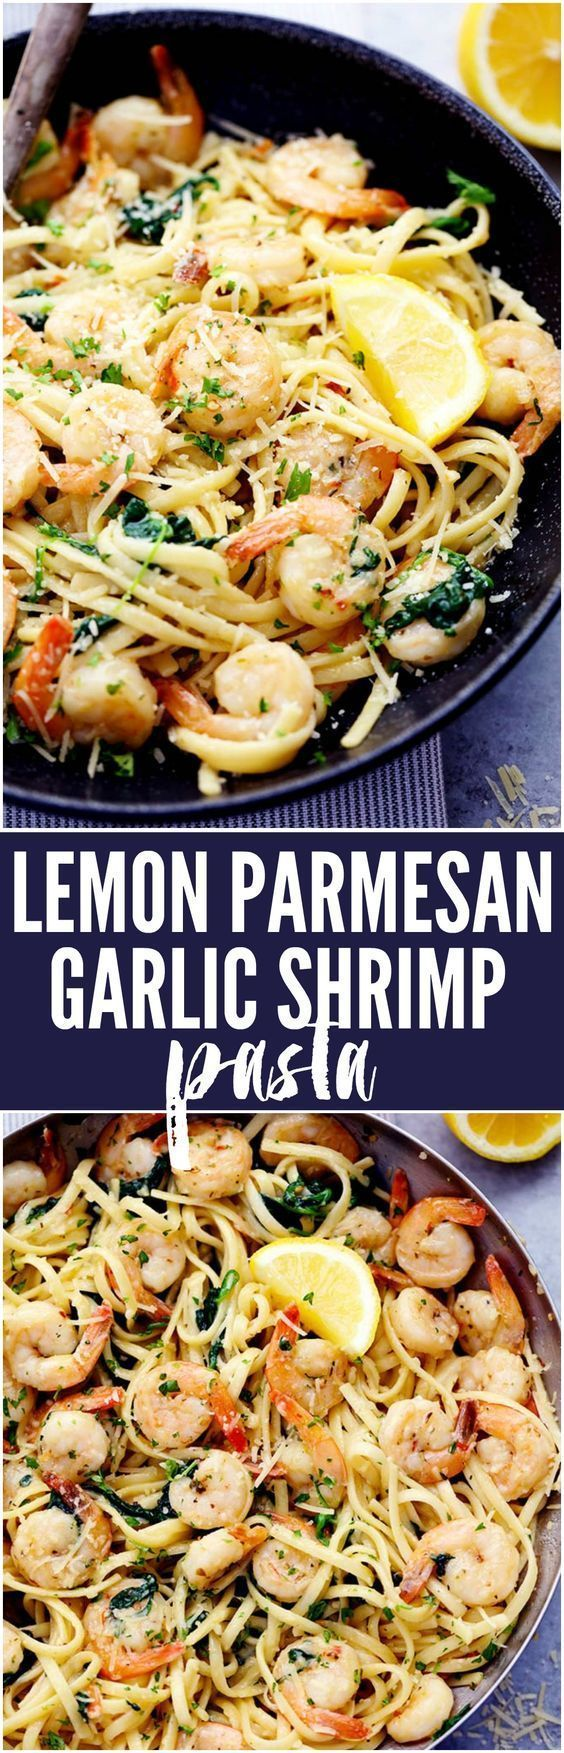 One Pot Lemon Garlic Parmesan Shrimp Pasta Recipe | The Recipe Critic - The Best Easy One Pot Pasta Family Dinner Recipes #onepotpasta #onepotmeals #pastarecipes #onepotpastarecipes #onepotrecipes #mealprep #pasta #simplefamilymeals #simplefamilyrecipes #simplerecipes